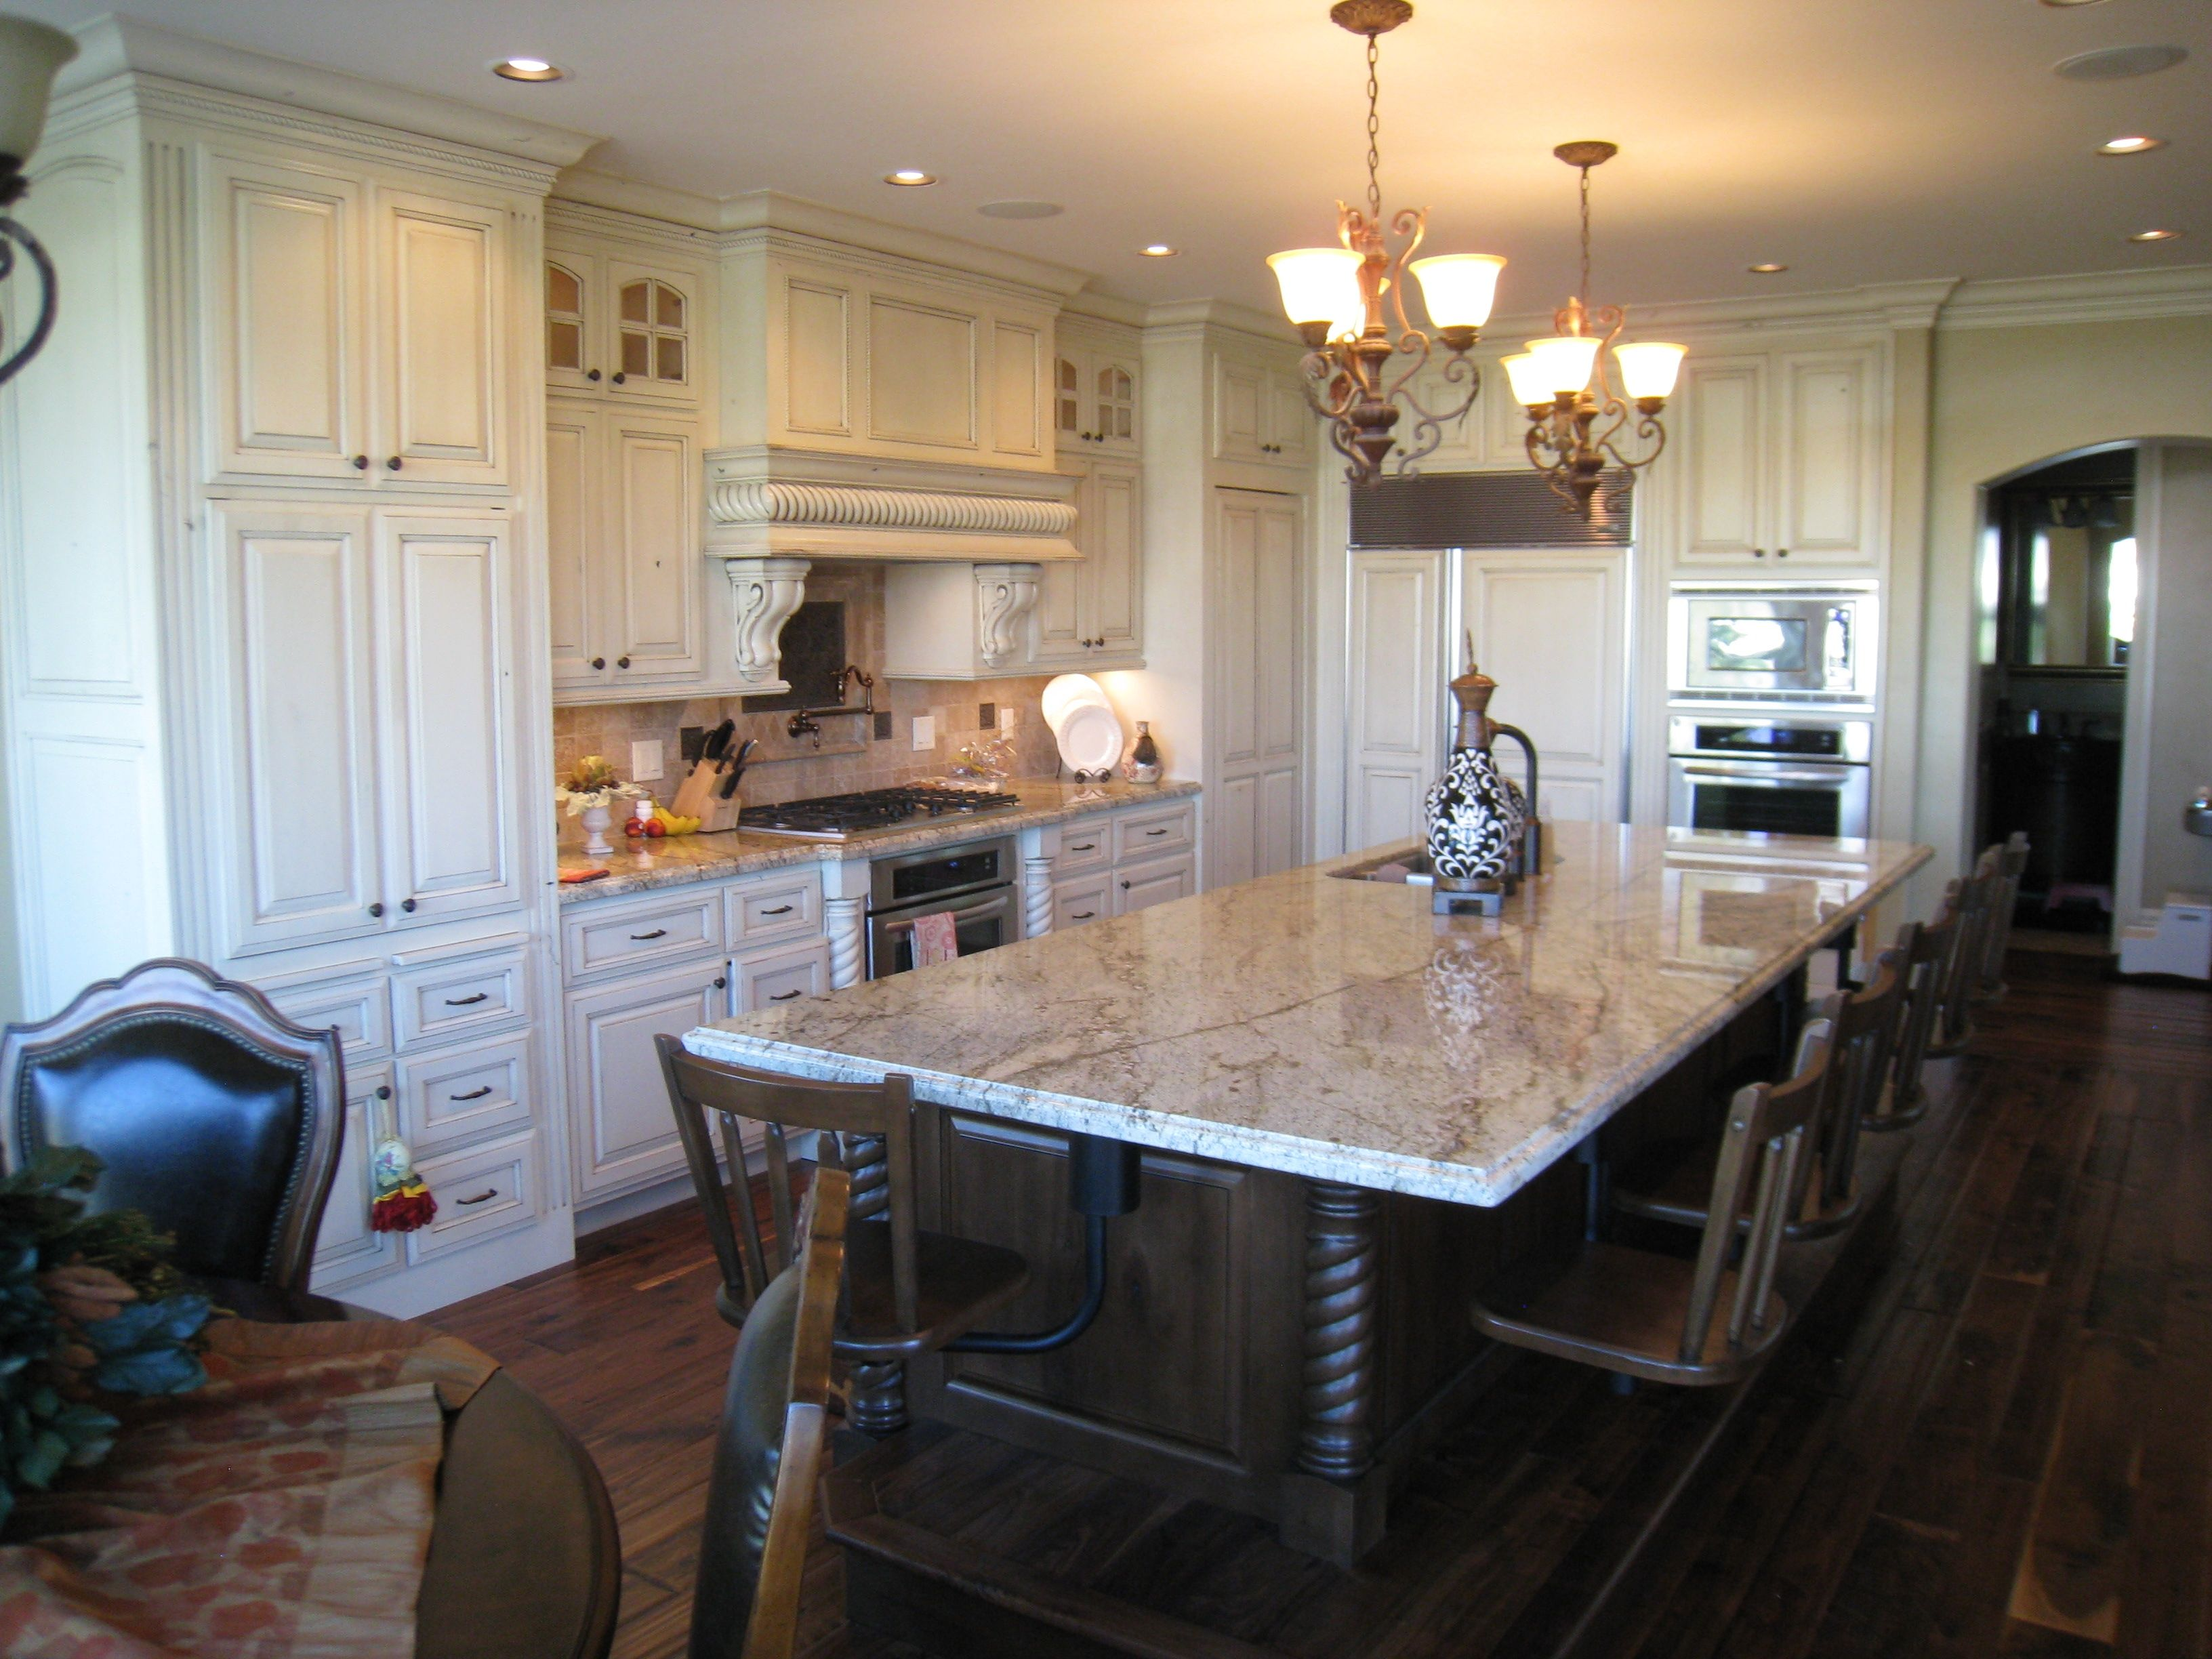 Help Design My Home The Latest Trend In Kitchens White Cabinets And Granite